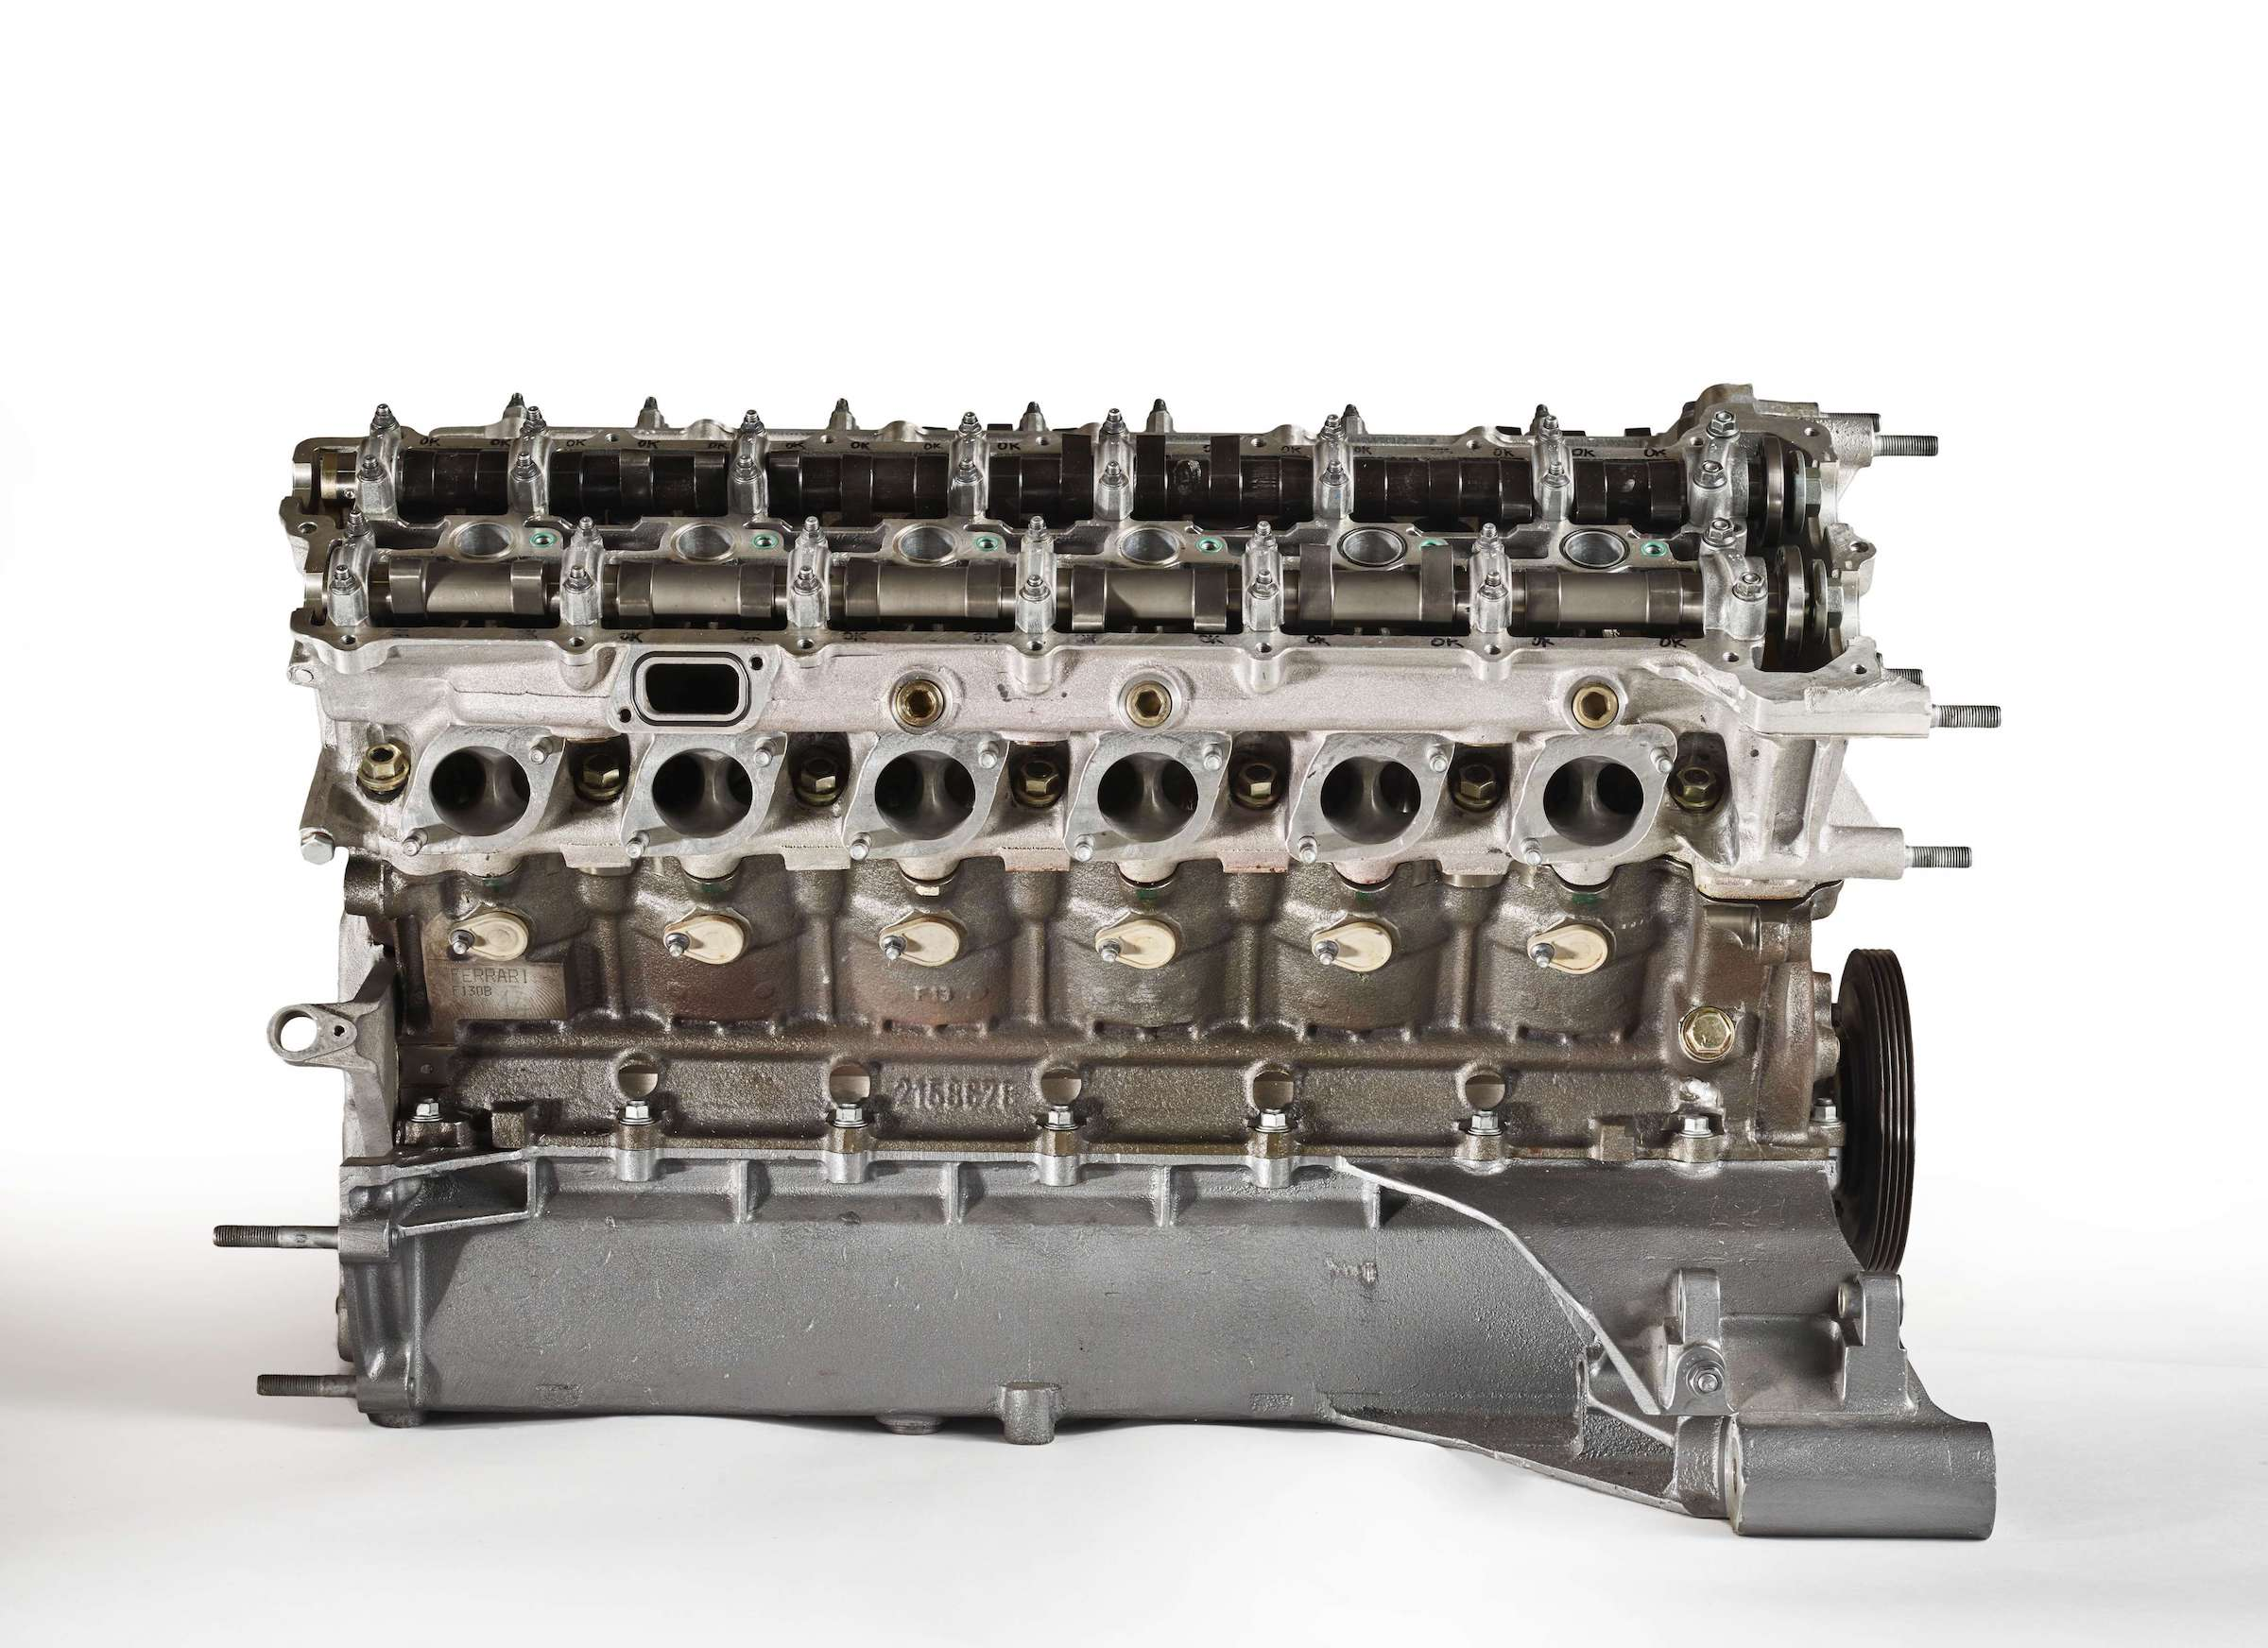 Ferrari F50 V12 Engine Side